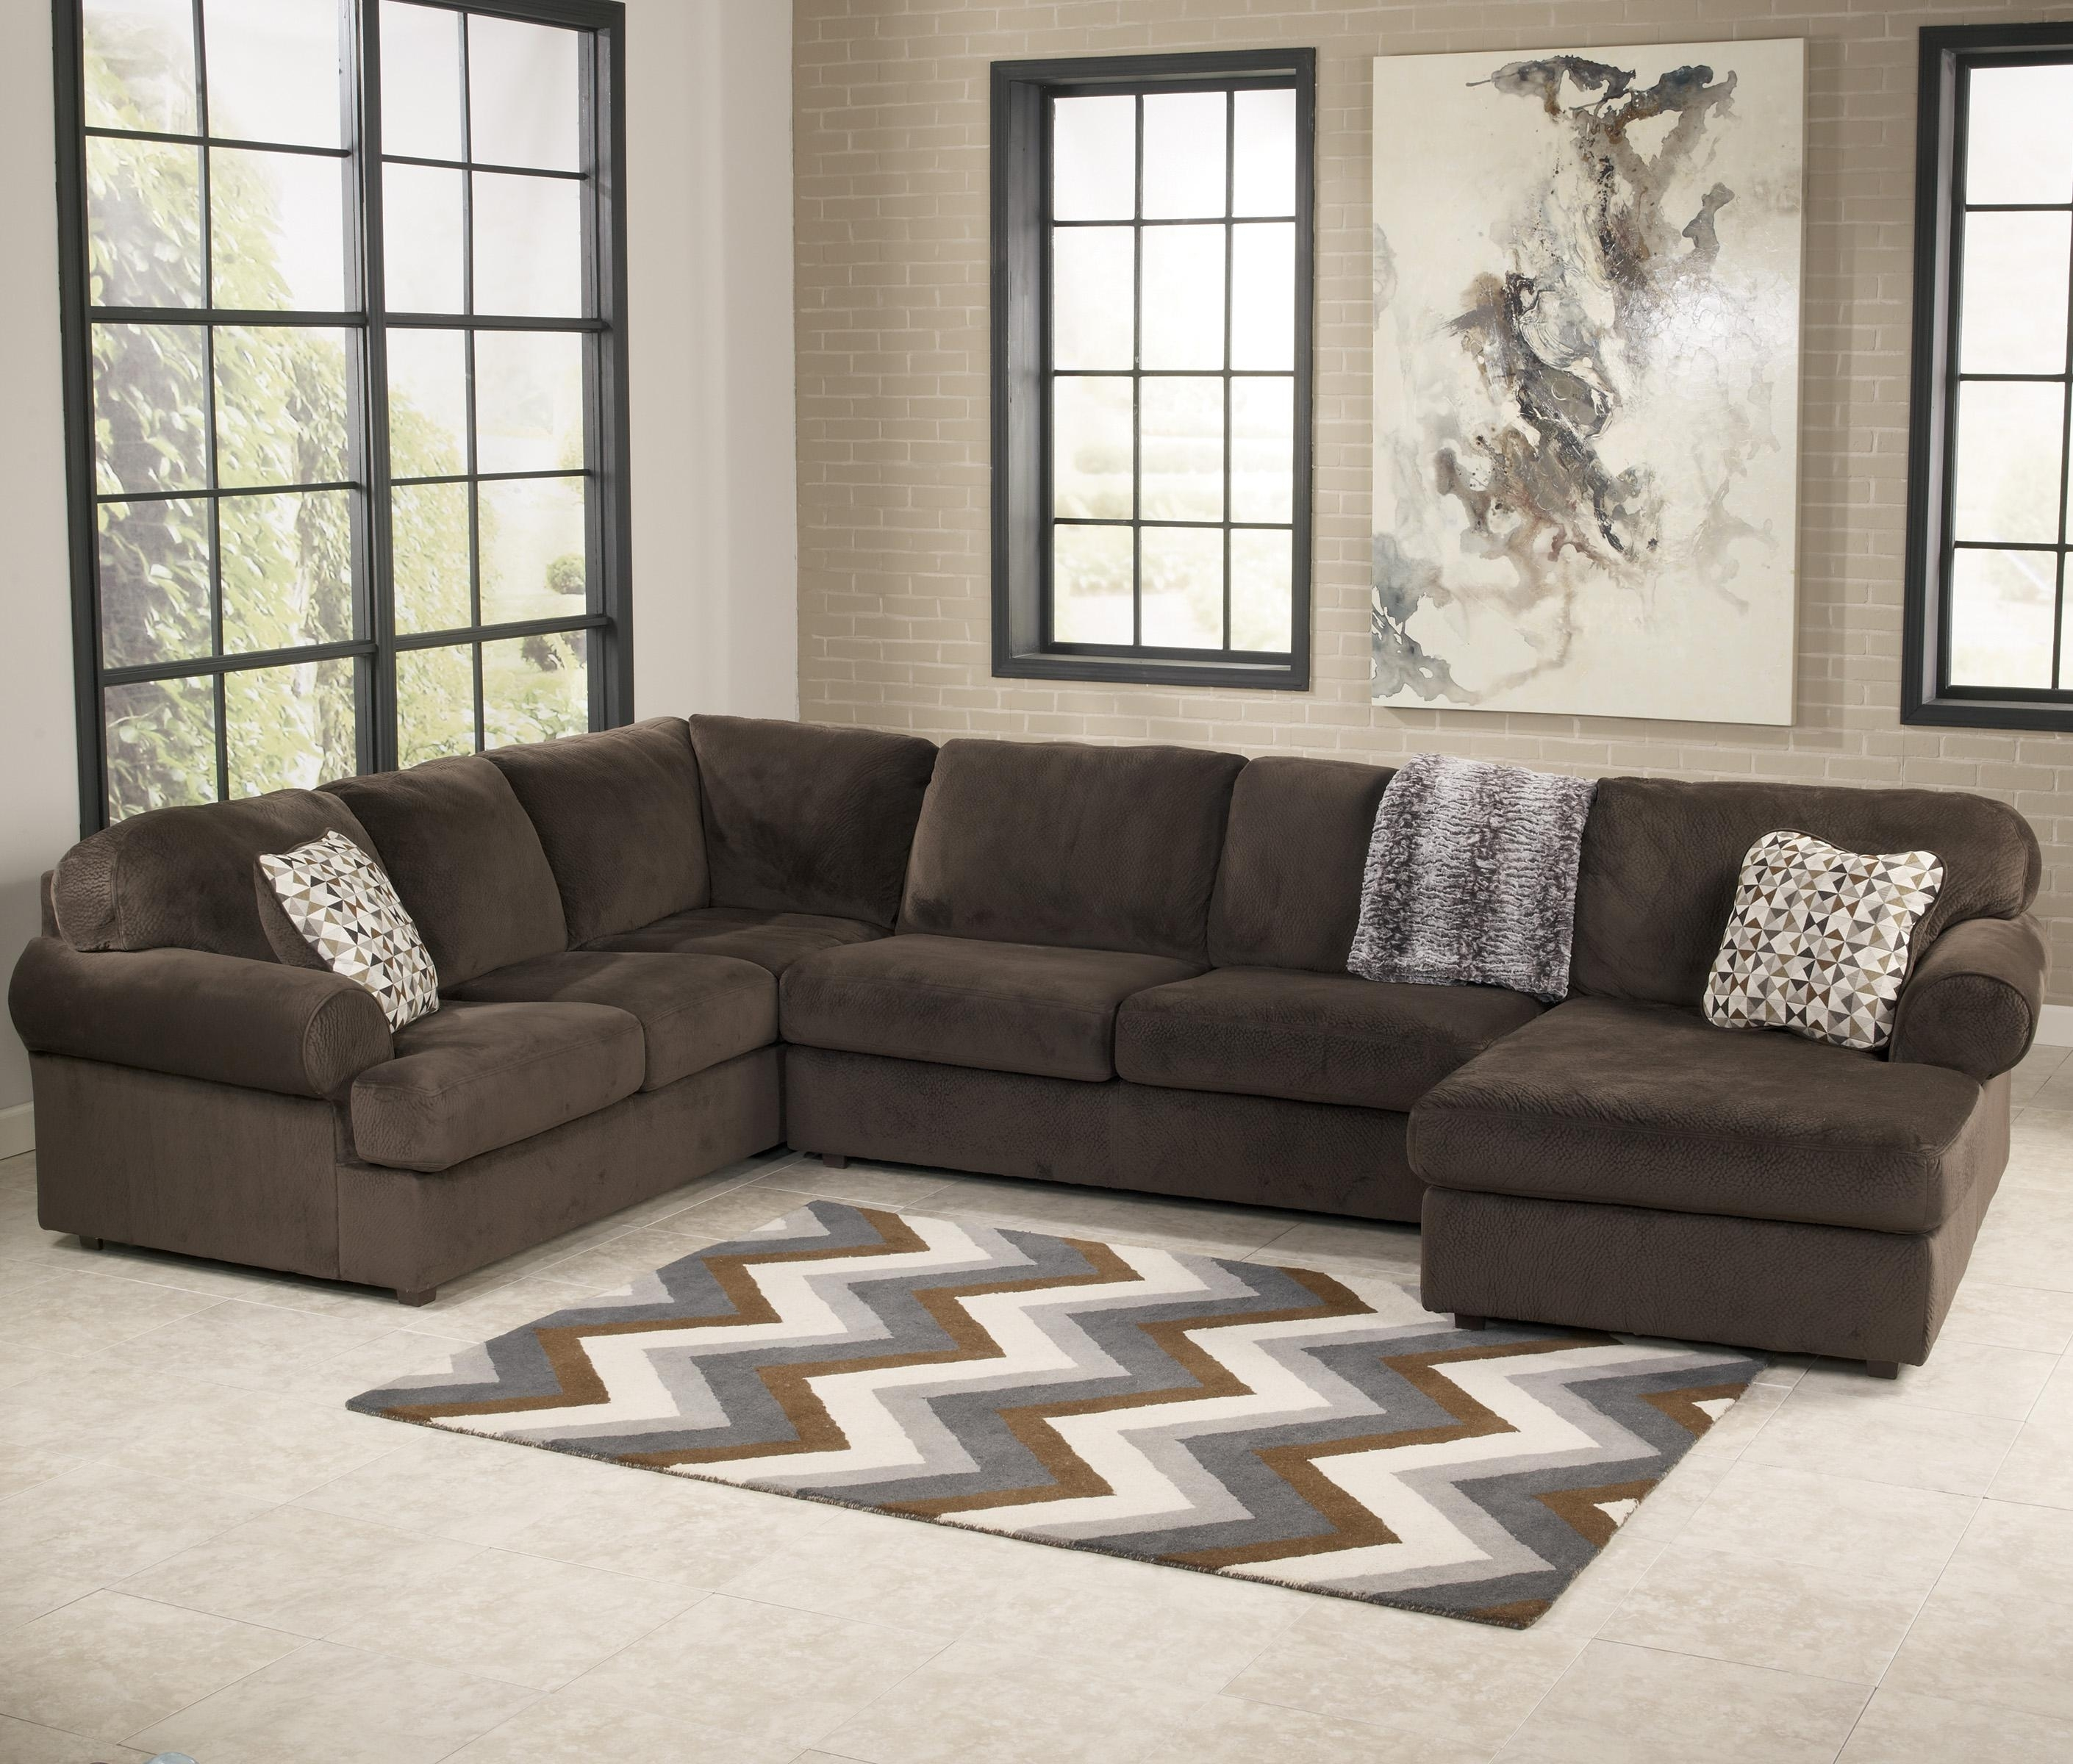 Signature Designashley Jessa Place – Chocolate Casual Sectional In Killeen Tx Sectional Sofas (Image 7 of 10)